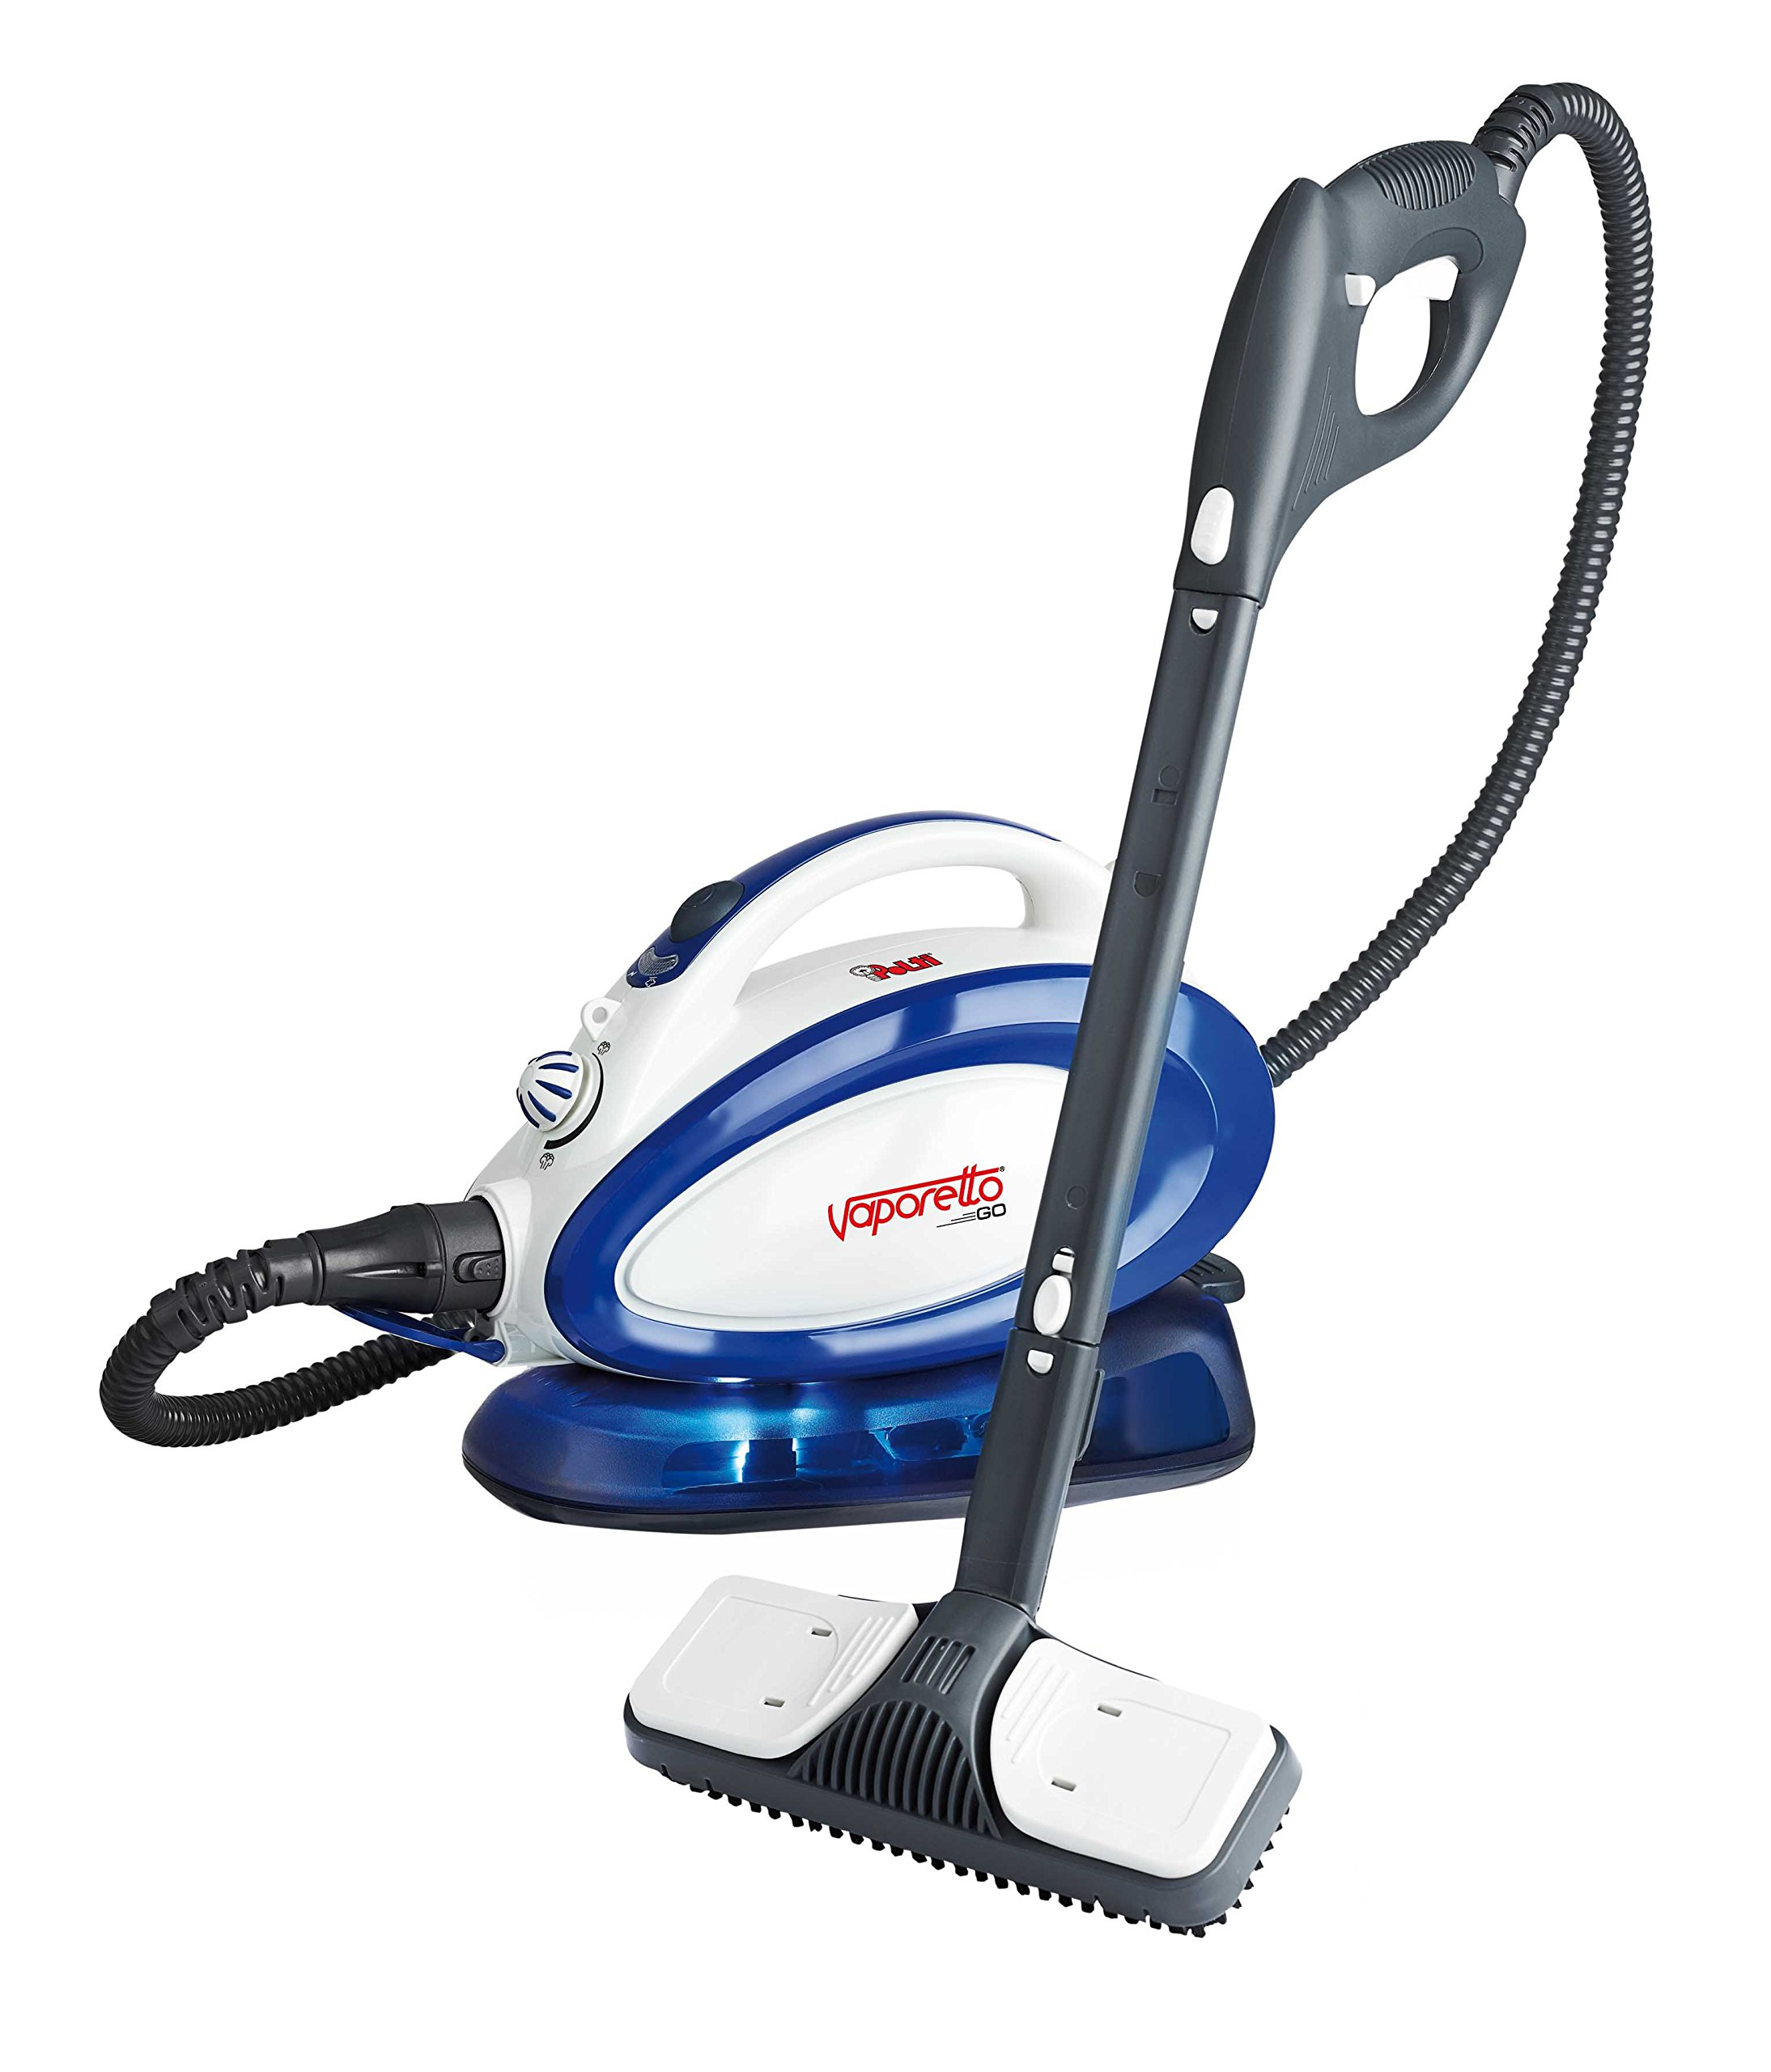 Polti vaporetto go steam cleaner 3 5 bar for Vaporetto polti